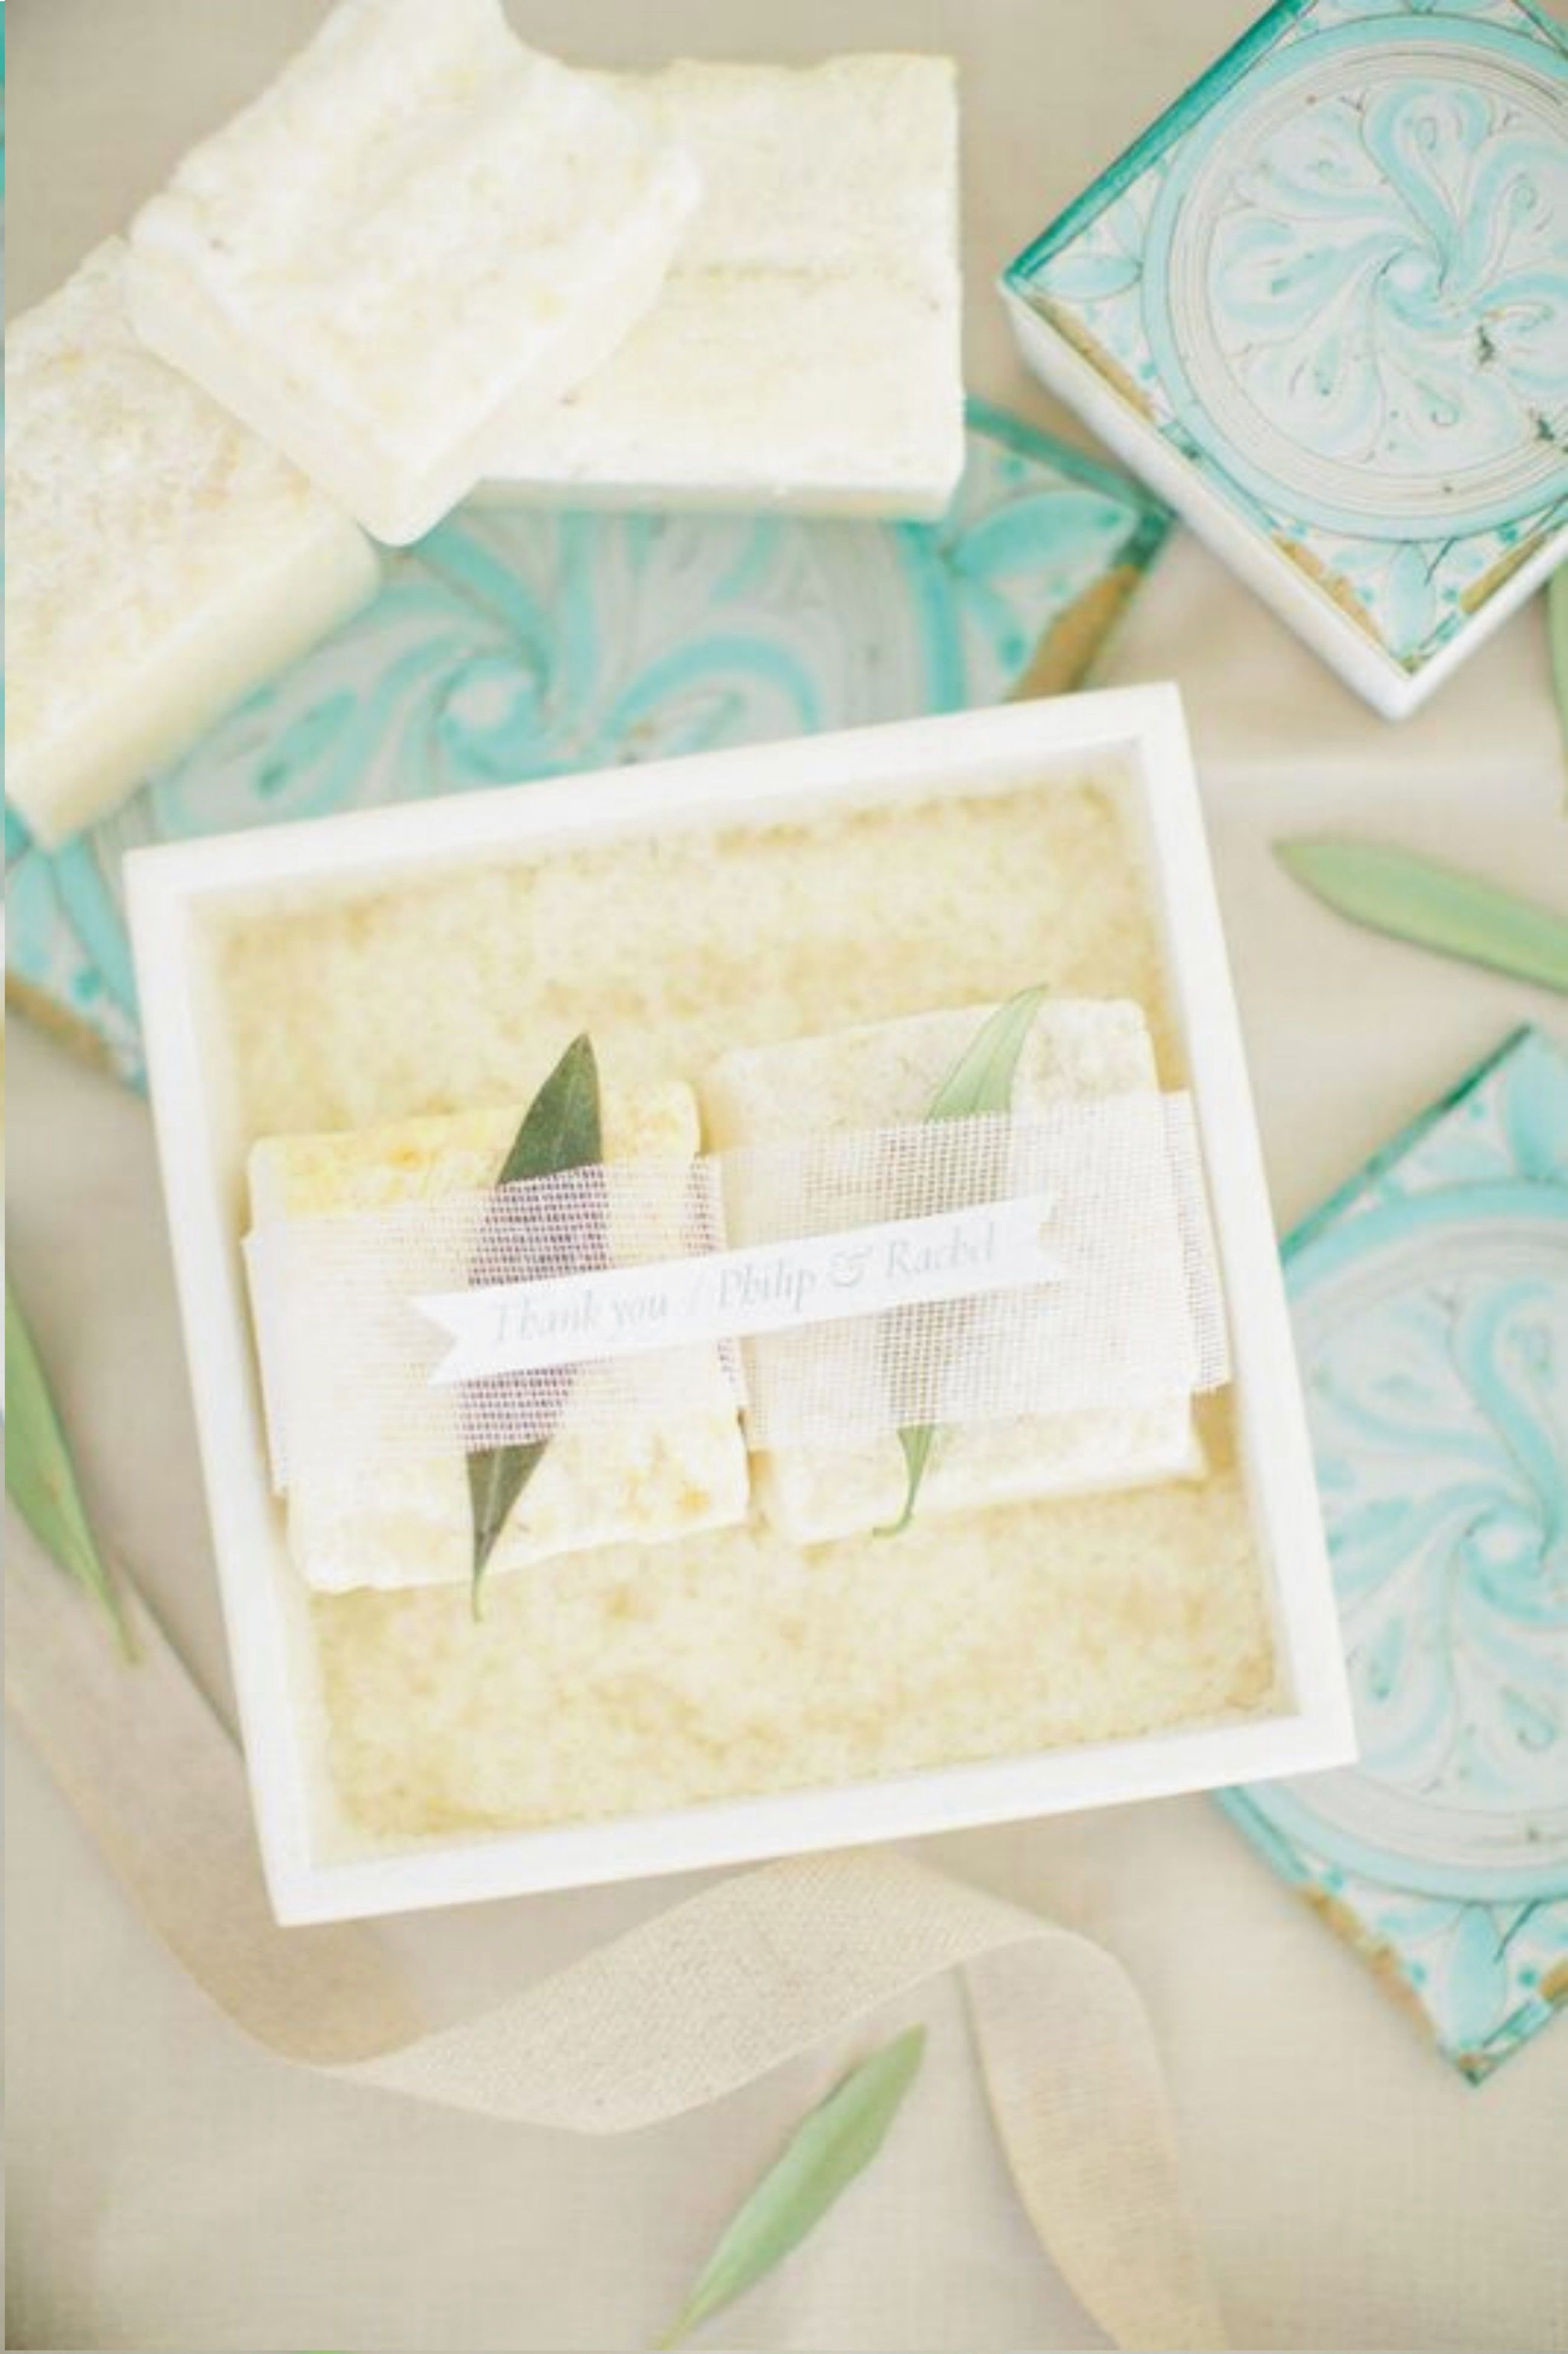 wedding giveaway gifts | wooden boxes with printed plexiglass lid ...